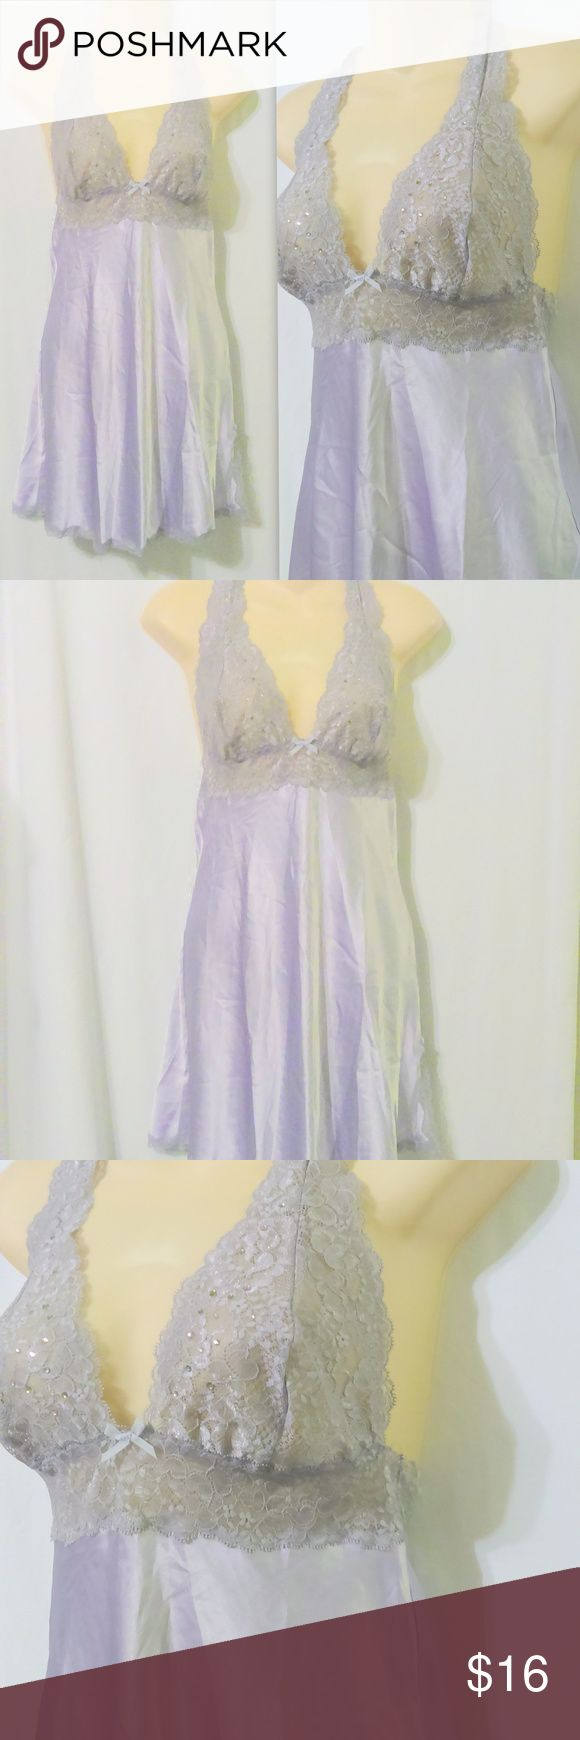 "VICTORIAS SECRET Lavender Satin Lace Nightgown This sexy little nightie is made by Victoria's Secret and is a size petite small. It is done in a lavender polyester satin with a lace bodice that has sparkling details and a racer back. Measurements are: Bust 34"", waist 30"", hips 40"", length 34"". In beautiful condition and oh so soft! Victoria's Secret Intimates & Sleepwear Chemises & Slips"